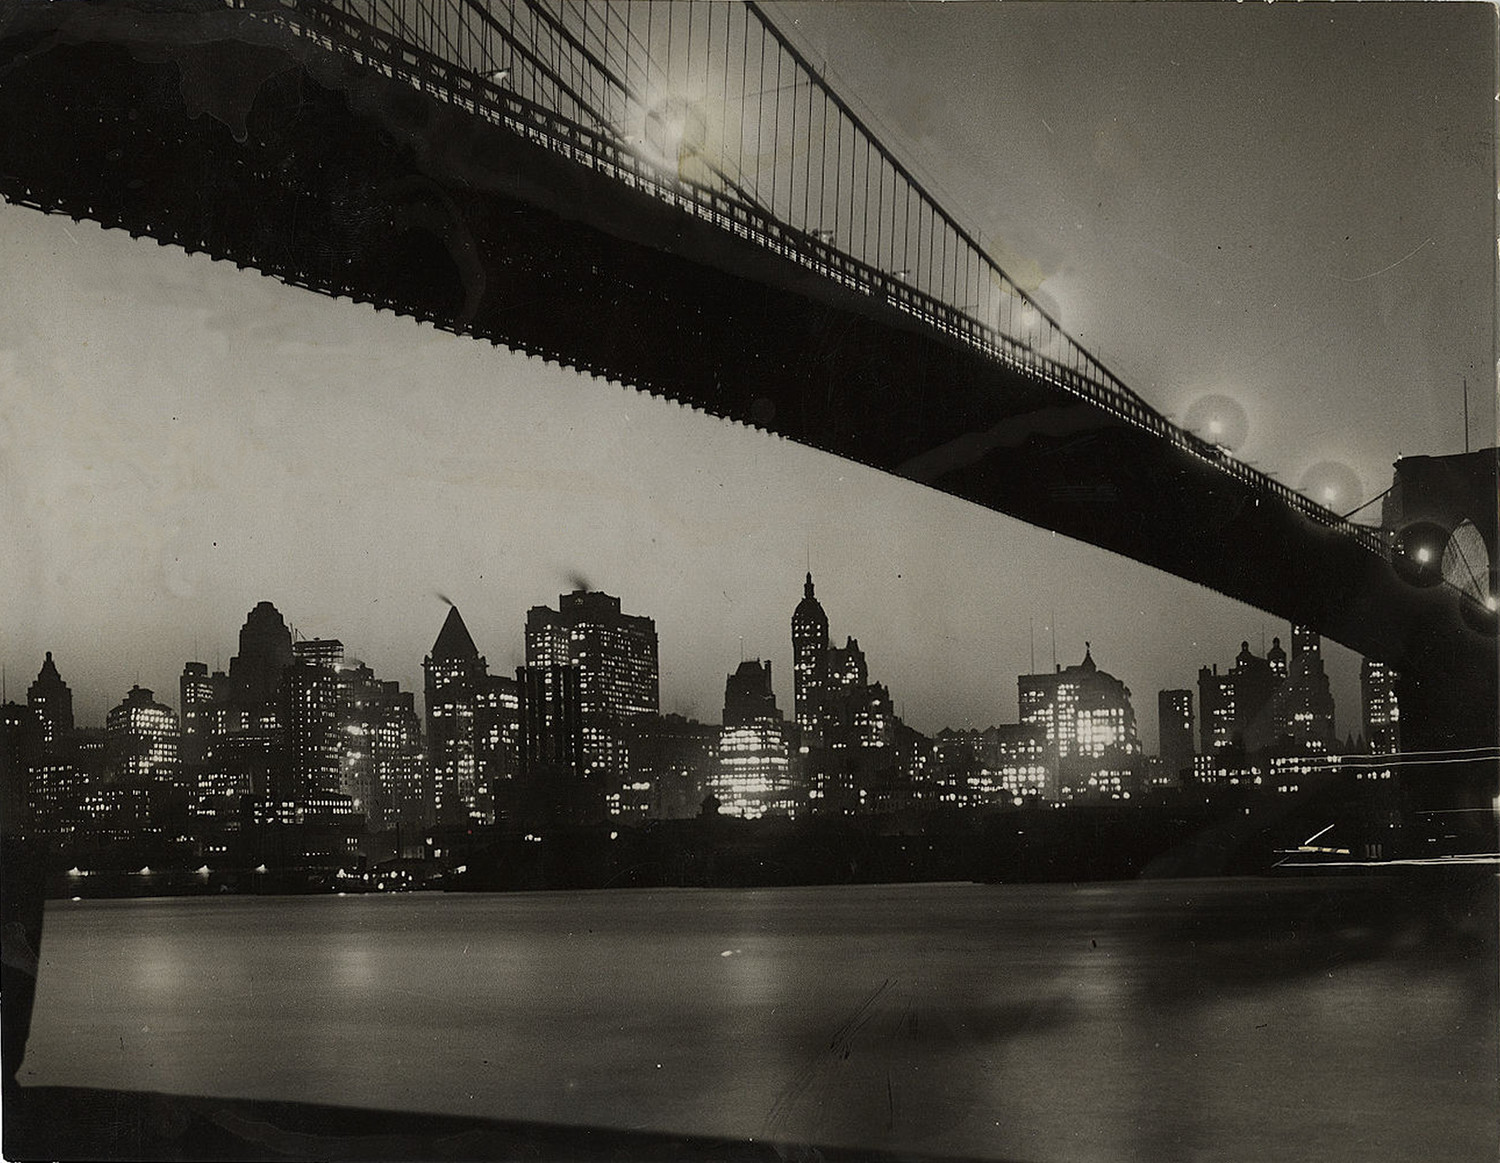 Old New York In Photos – Brooklyn Bridge & The Manhattan Skyline At Night 1928